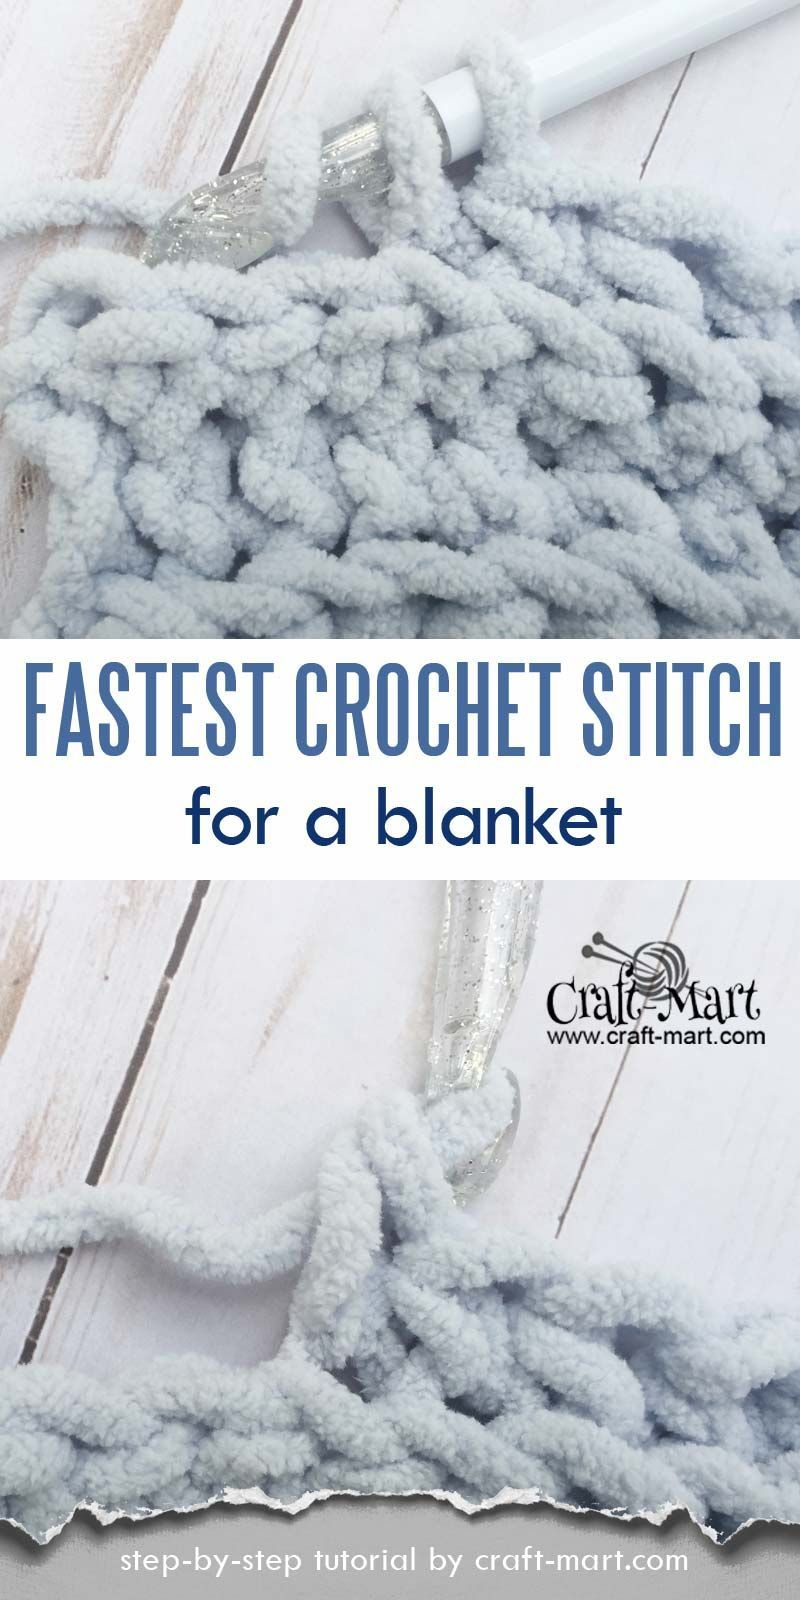 Crochet blanket patterns 405253666470873646 -  Simple and easy crochet blanket tutorial (FREE Bernat blanket yarn pattern) – Craft-Mart Source by bitta65 #singlecrochet